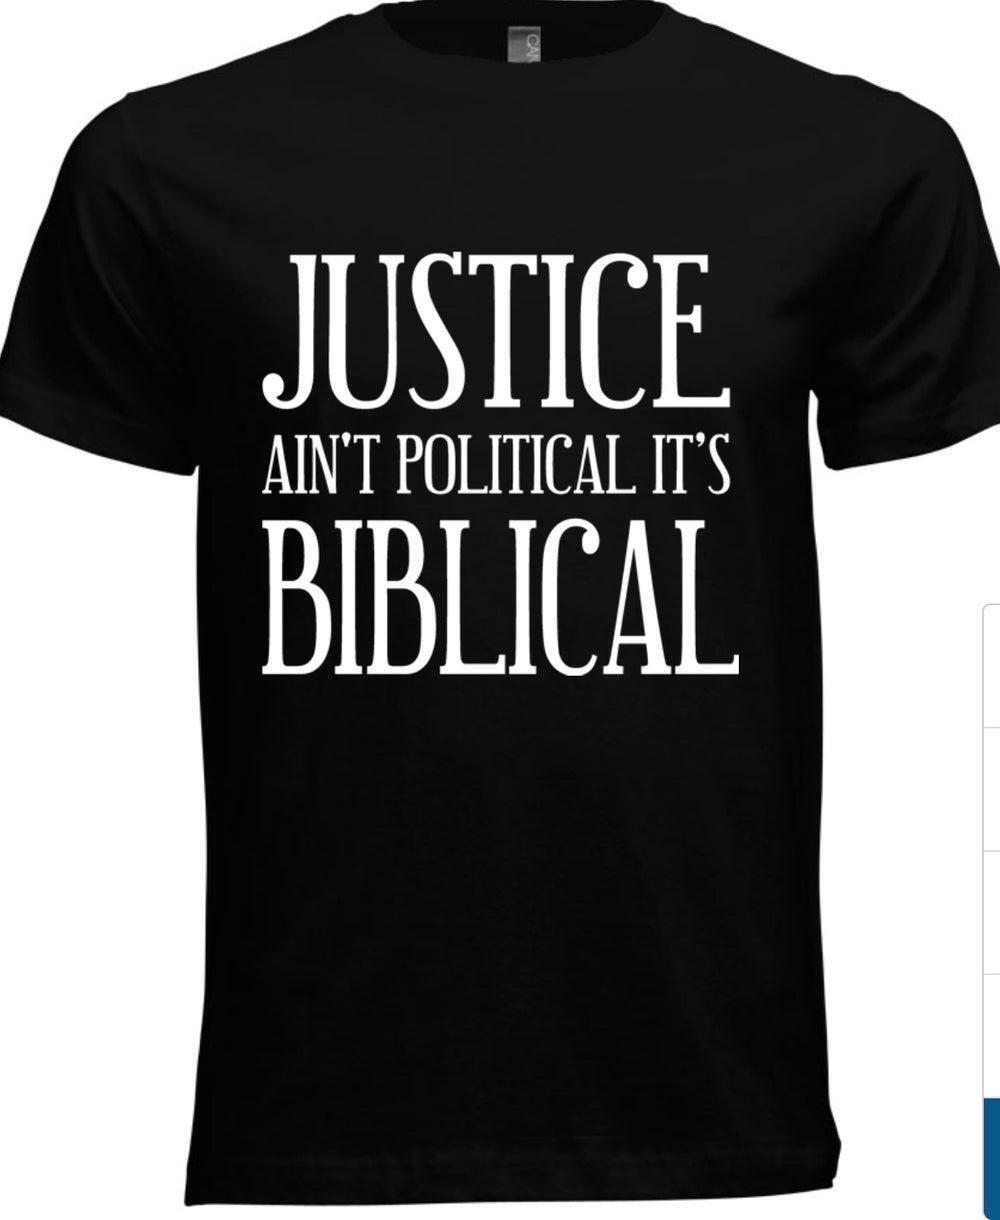 Image of MEN'S JUSTICE AIN'T POLITICAL IT'S BIBLICAL PLEASE ALLOW UP TO 14-16 BUSINESS DAYS TO RECEIVE